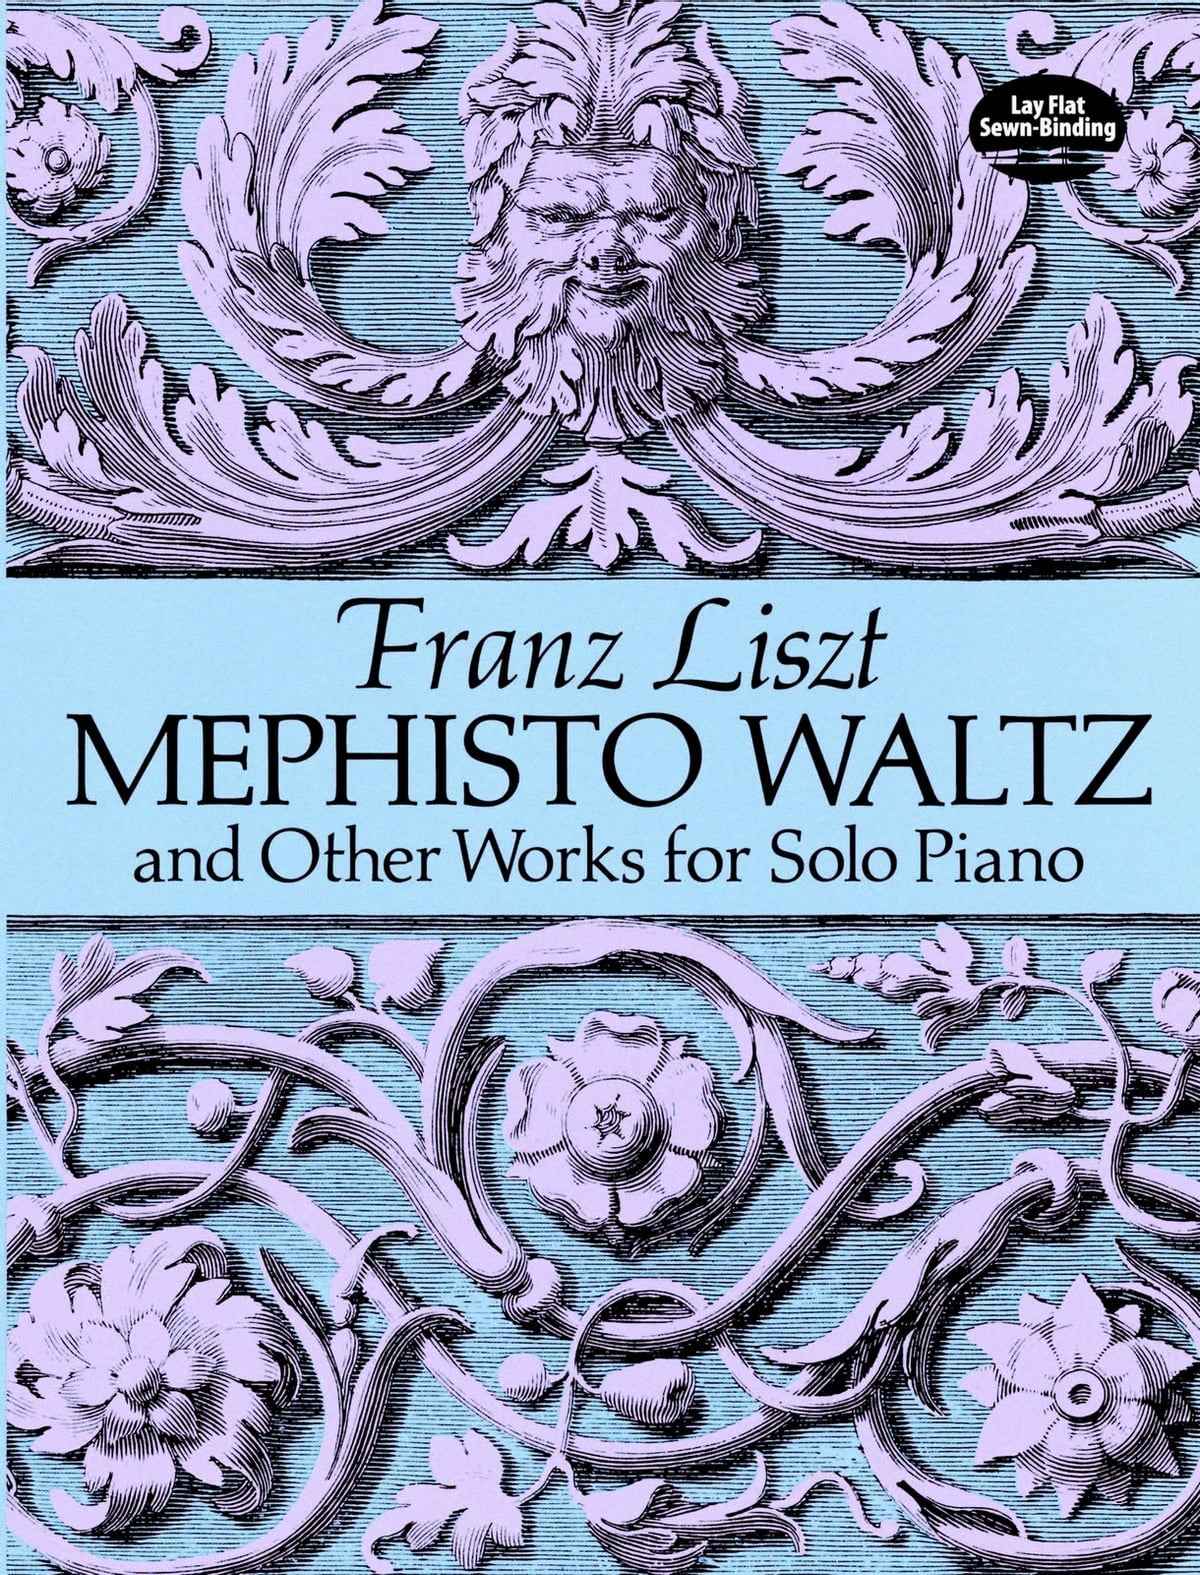 Mephisto Waltz and Other Works for Solo Piano eBook by Franz Liszt -  9780486171937 | Rakuten Kobo